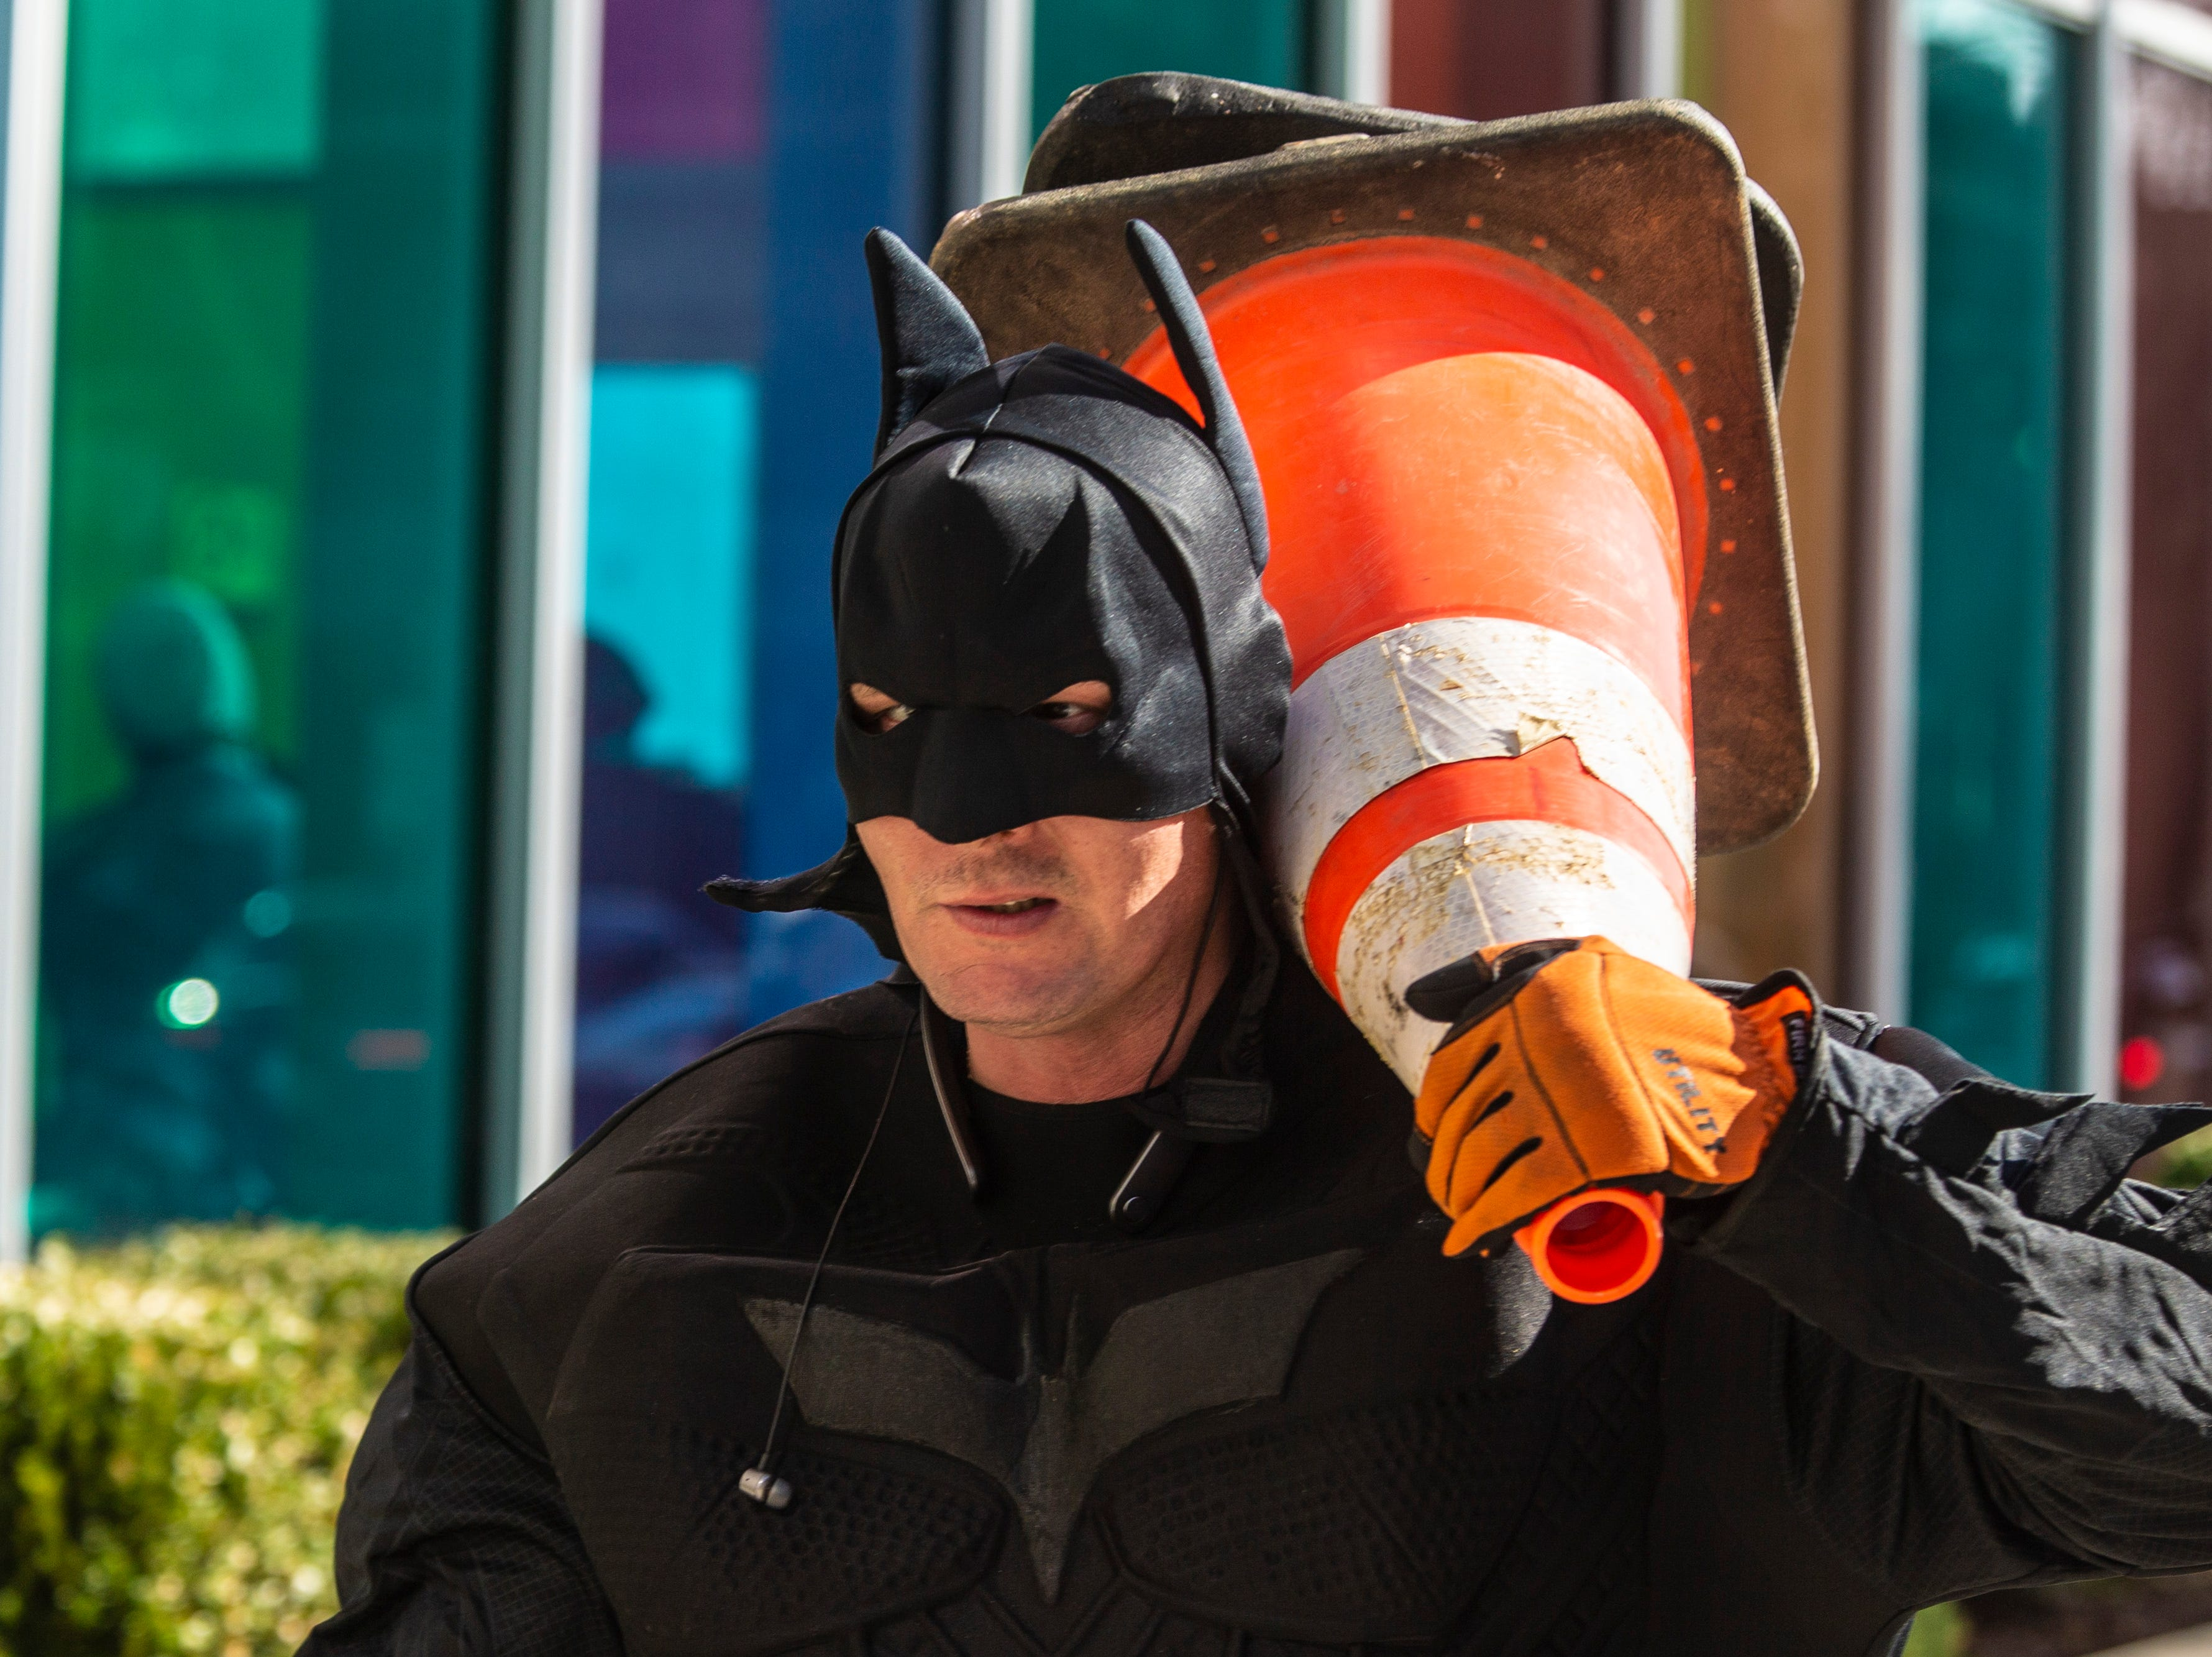 William Hart moves safety cones with Pro Clean International as the team wore super hero costumes while cleaning the windows at Norton Children's Hospital on Thursday. Feb. 21, 2019